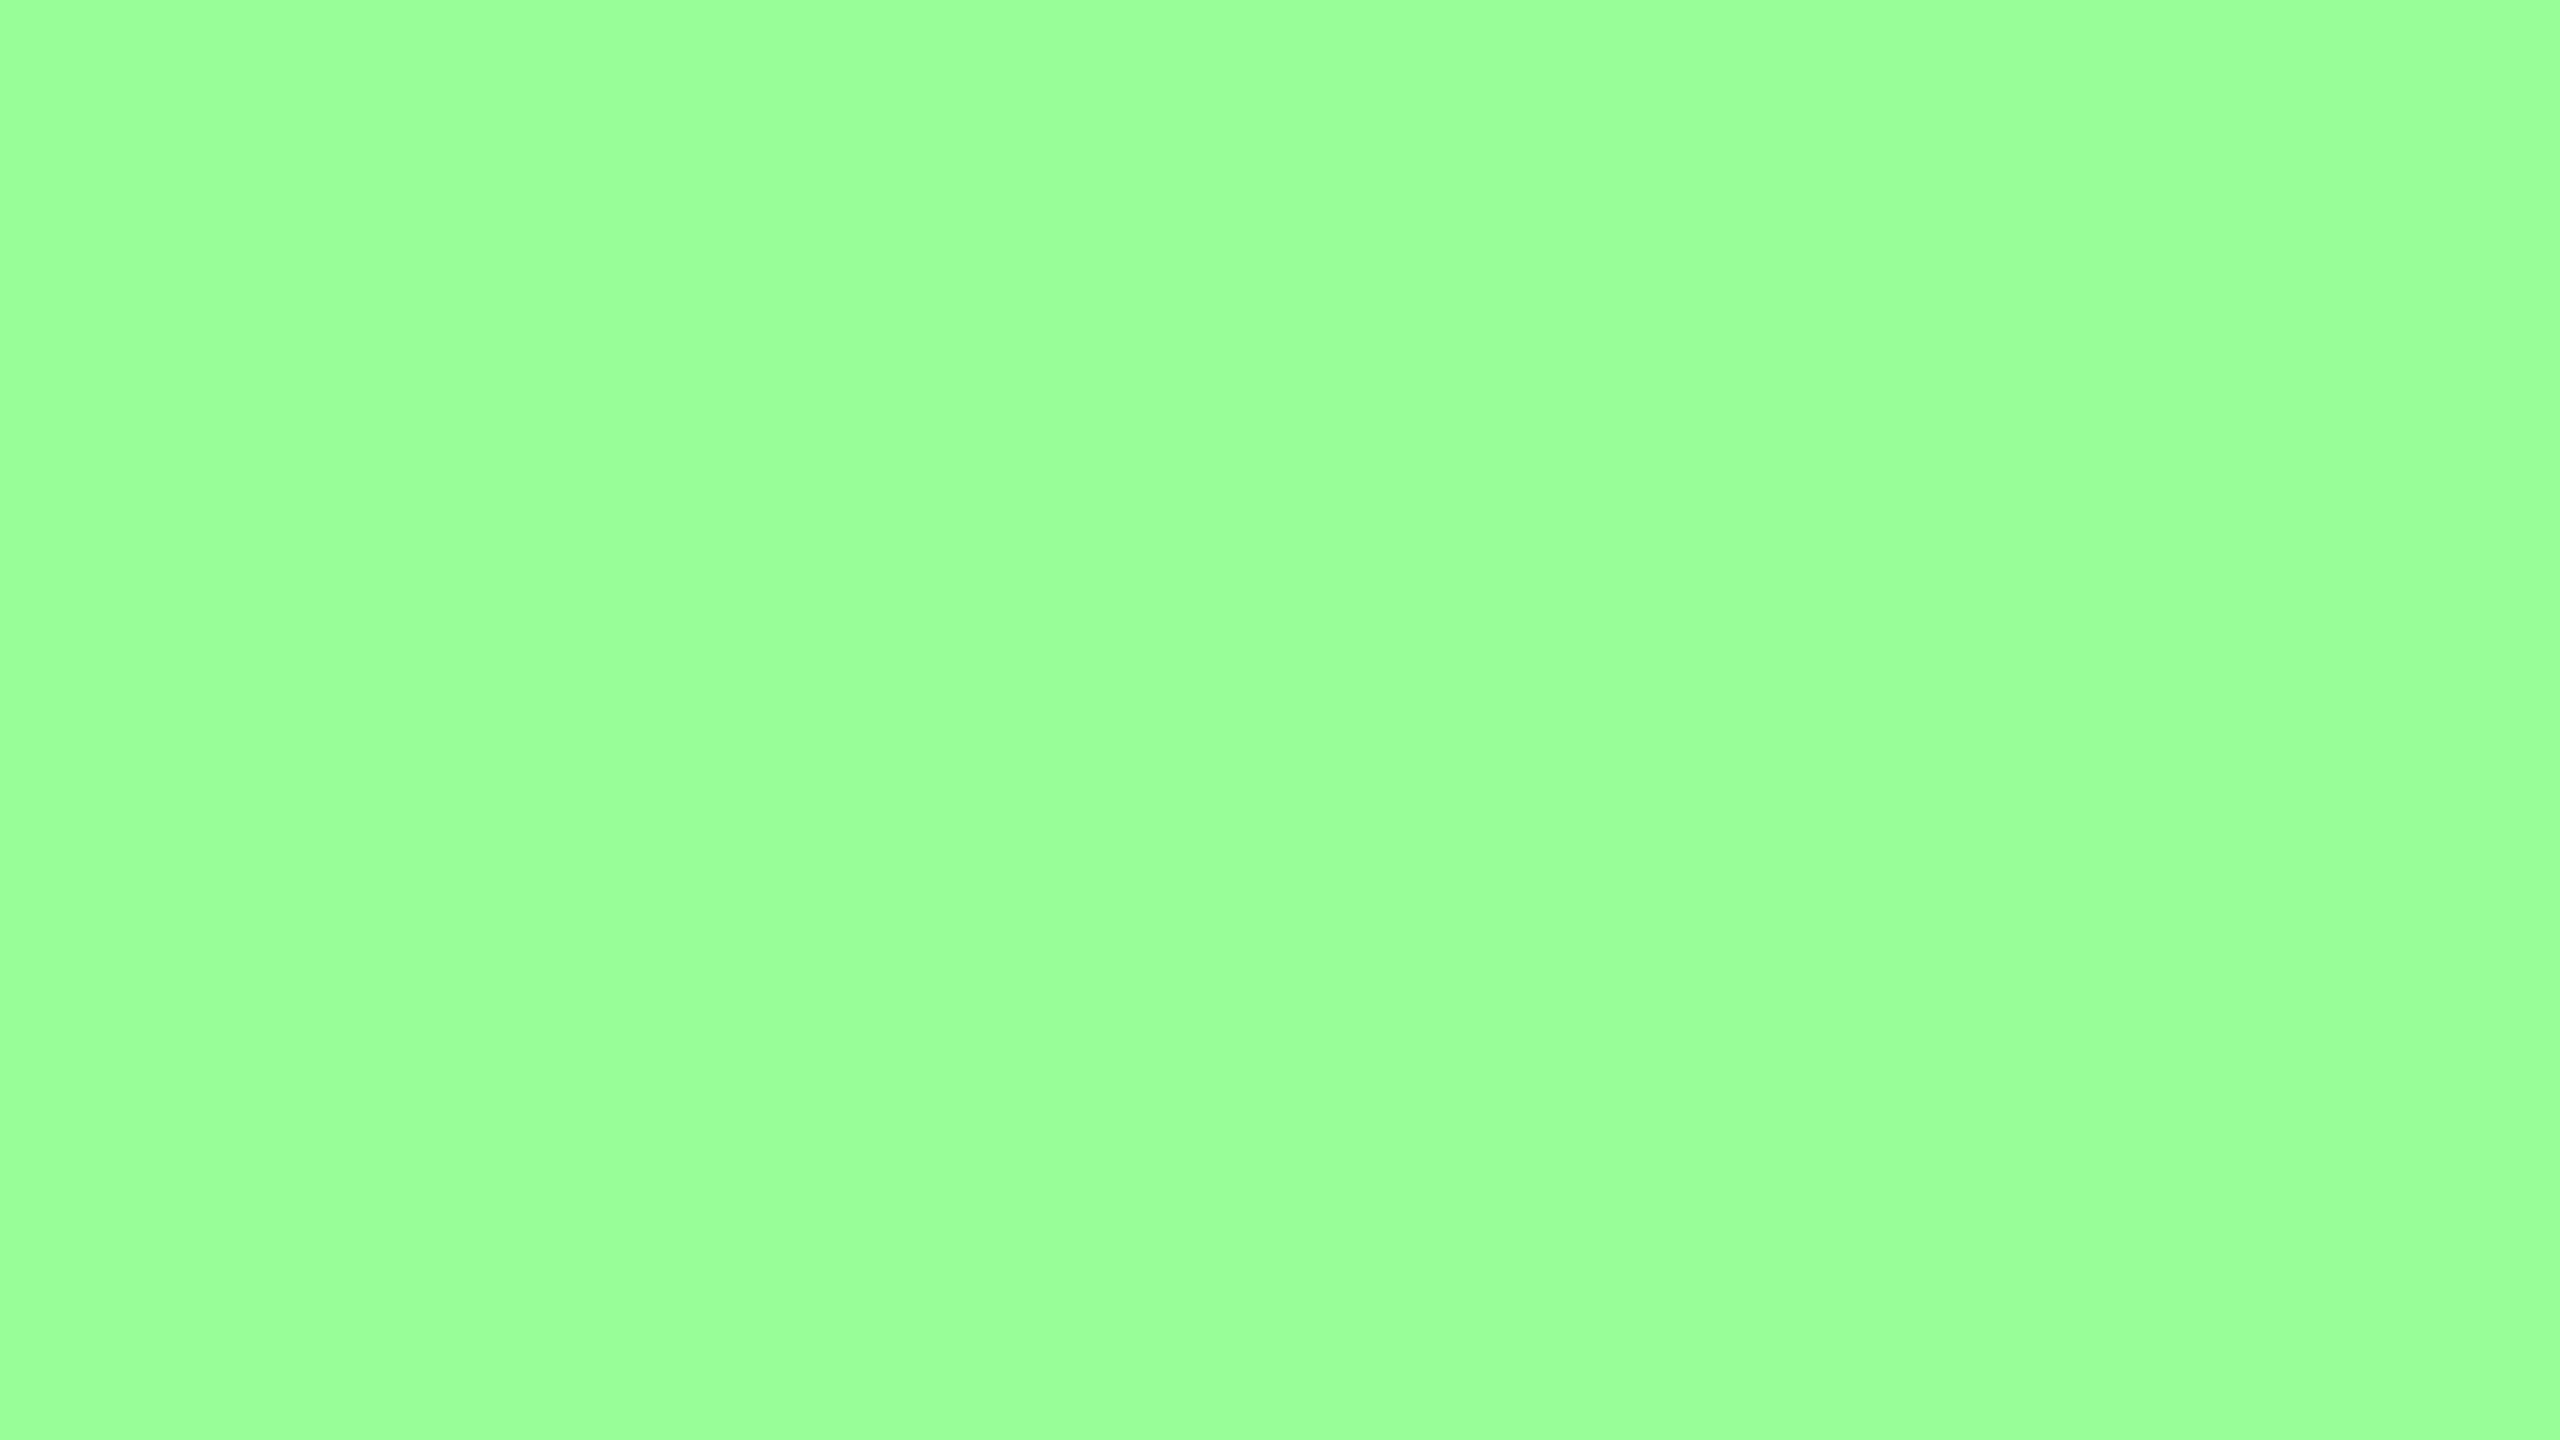 2560x1440 Mint Green Solid Color Background 2560x1440